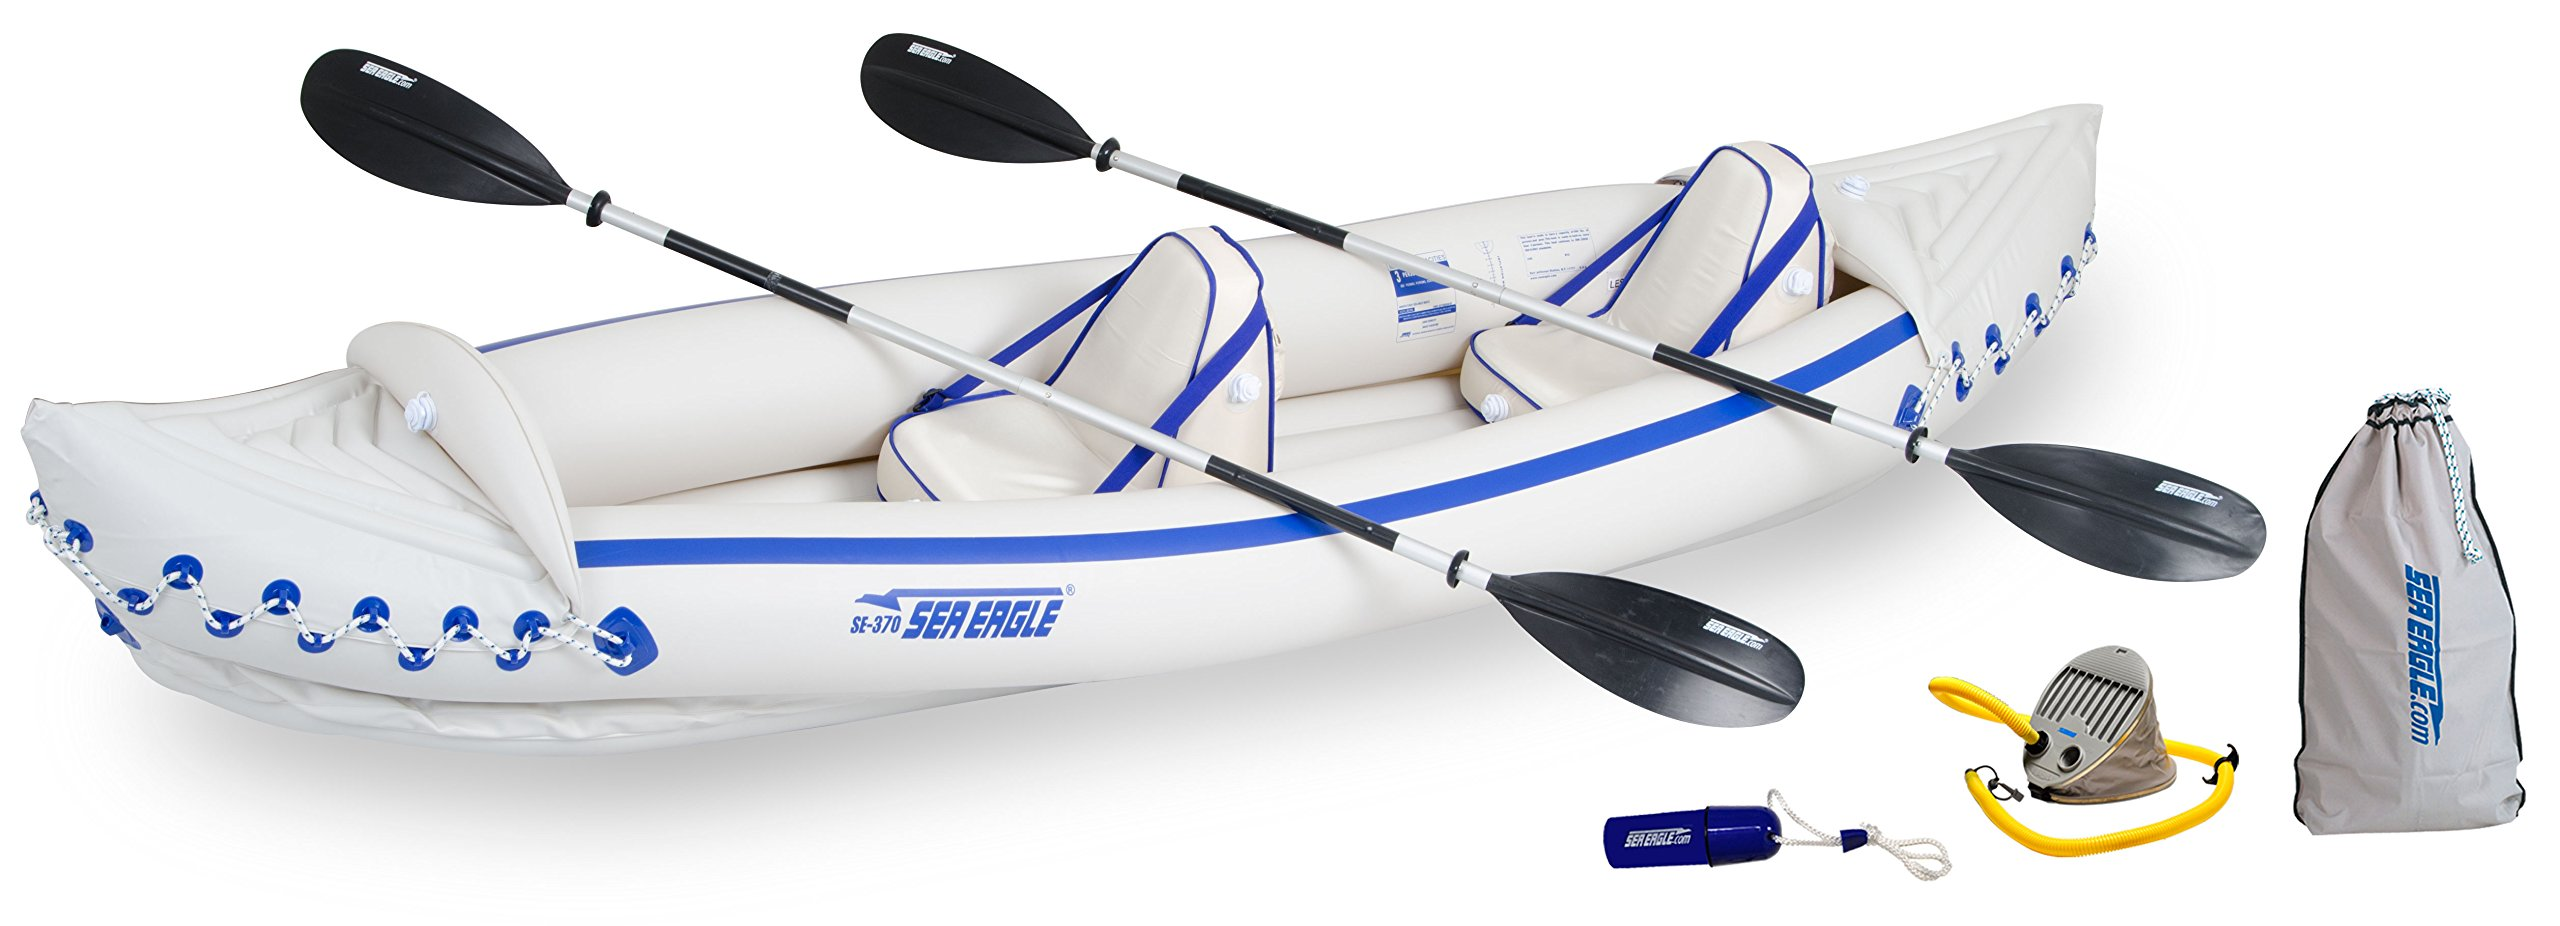 Sea Eagle SE370 review- Best Investment Ever 1